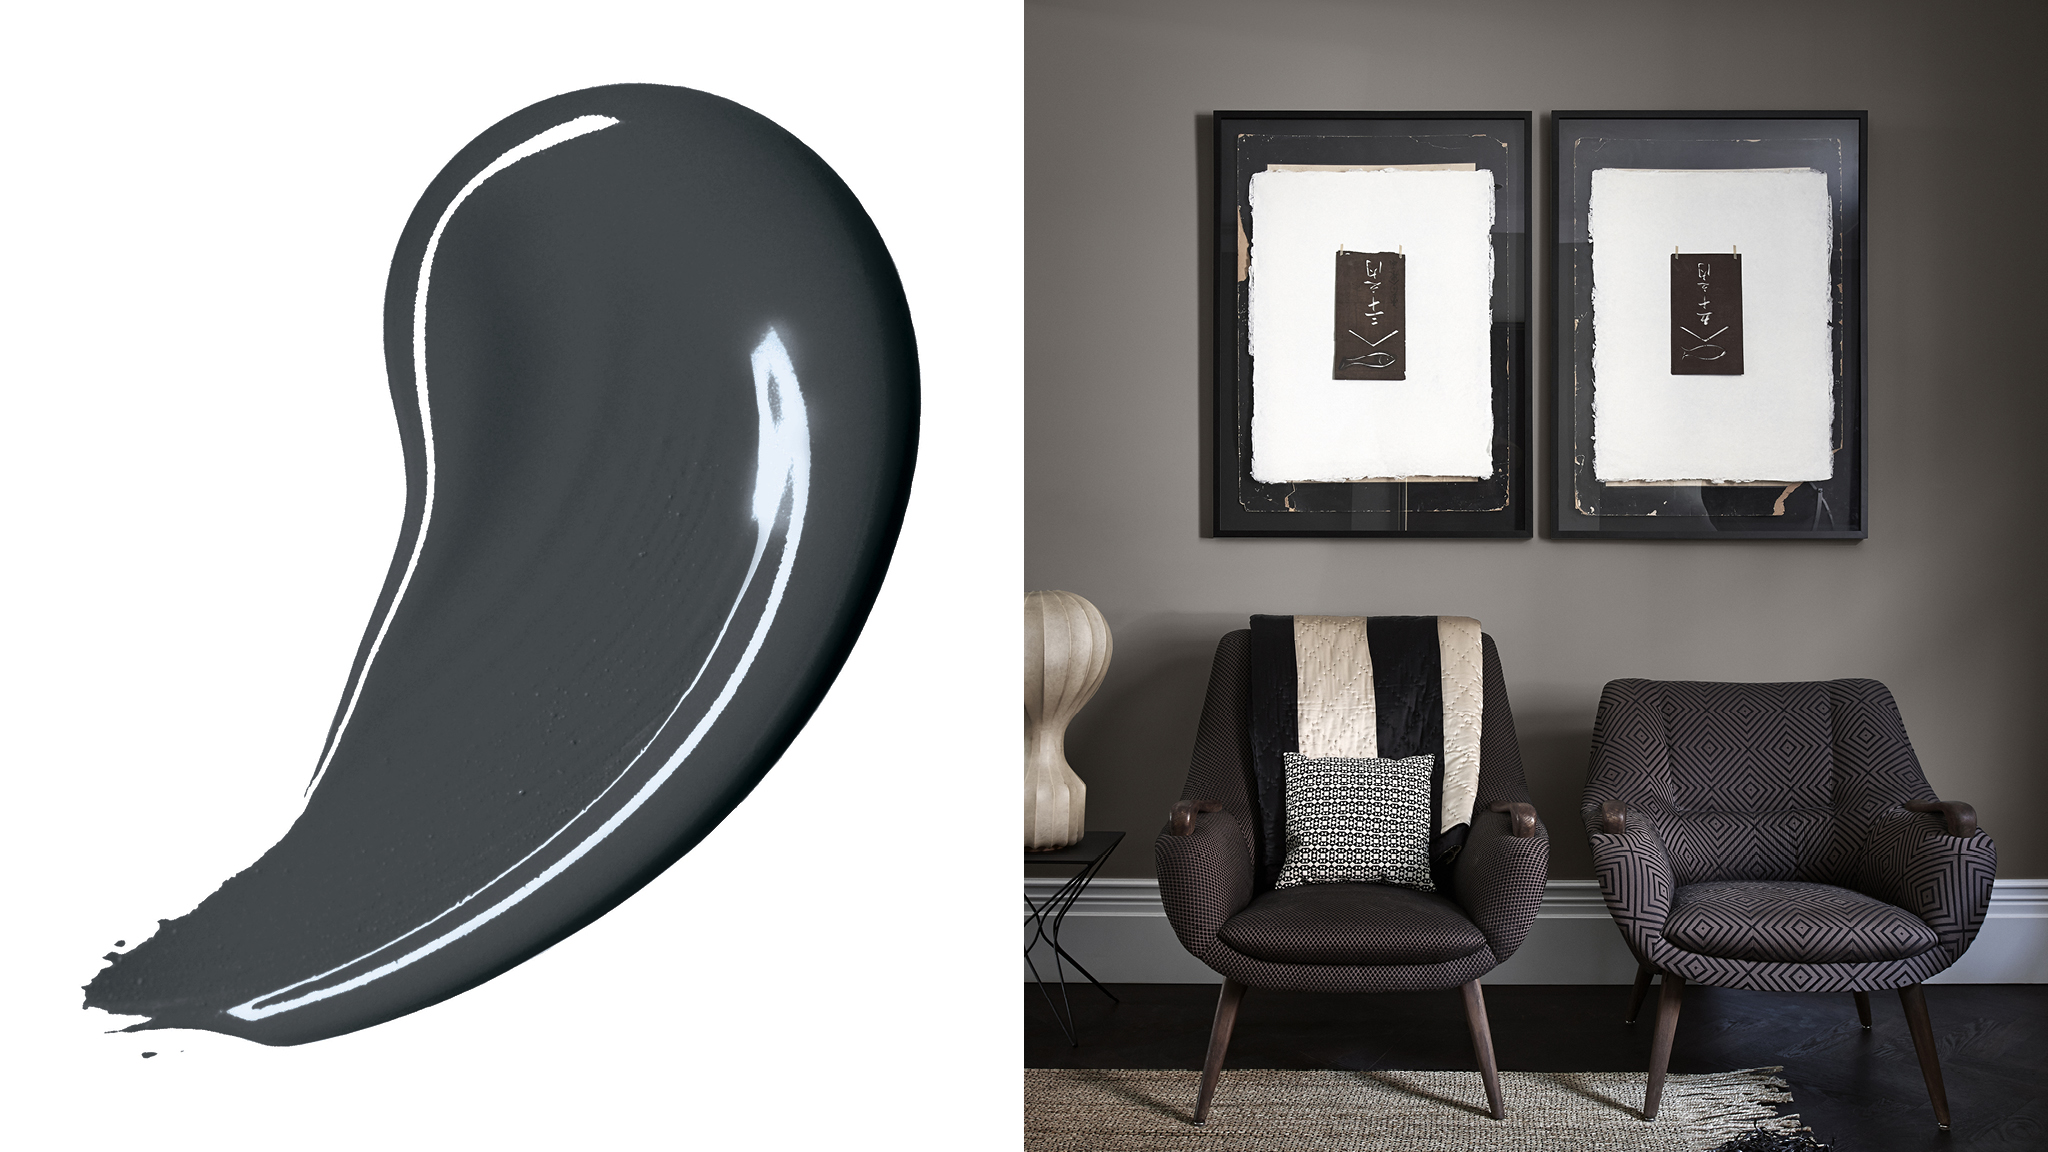 A dark, bold colour scheme will immediately add drama and flair to your new home. Deep charcoal grey is a versatile choice that will go with just about anything.